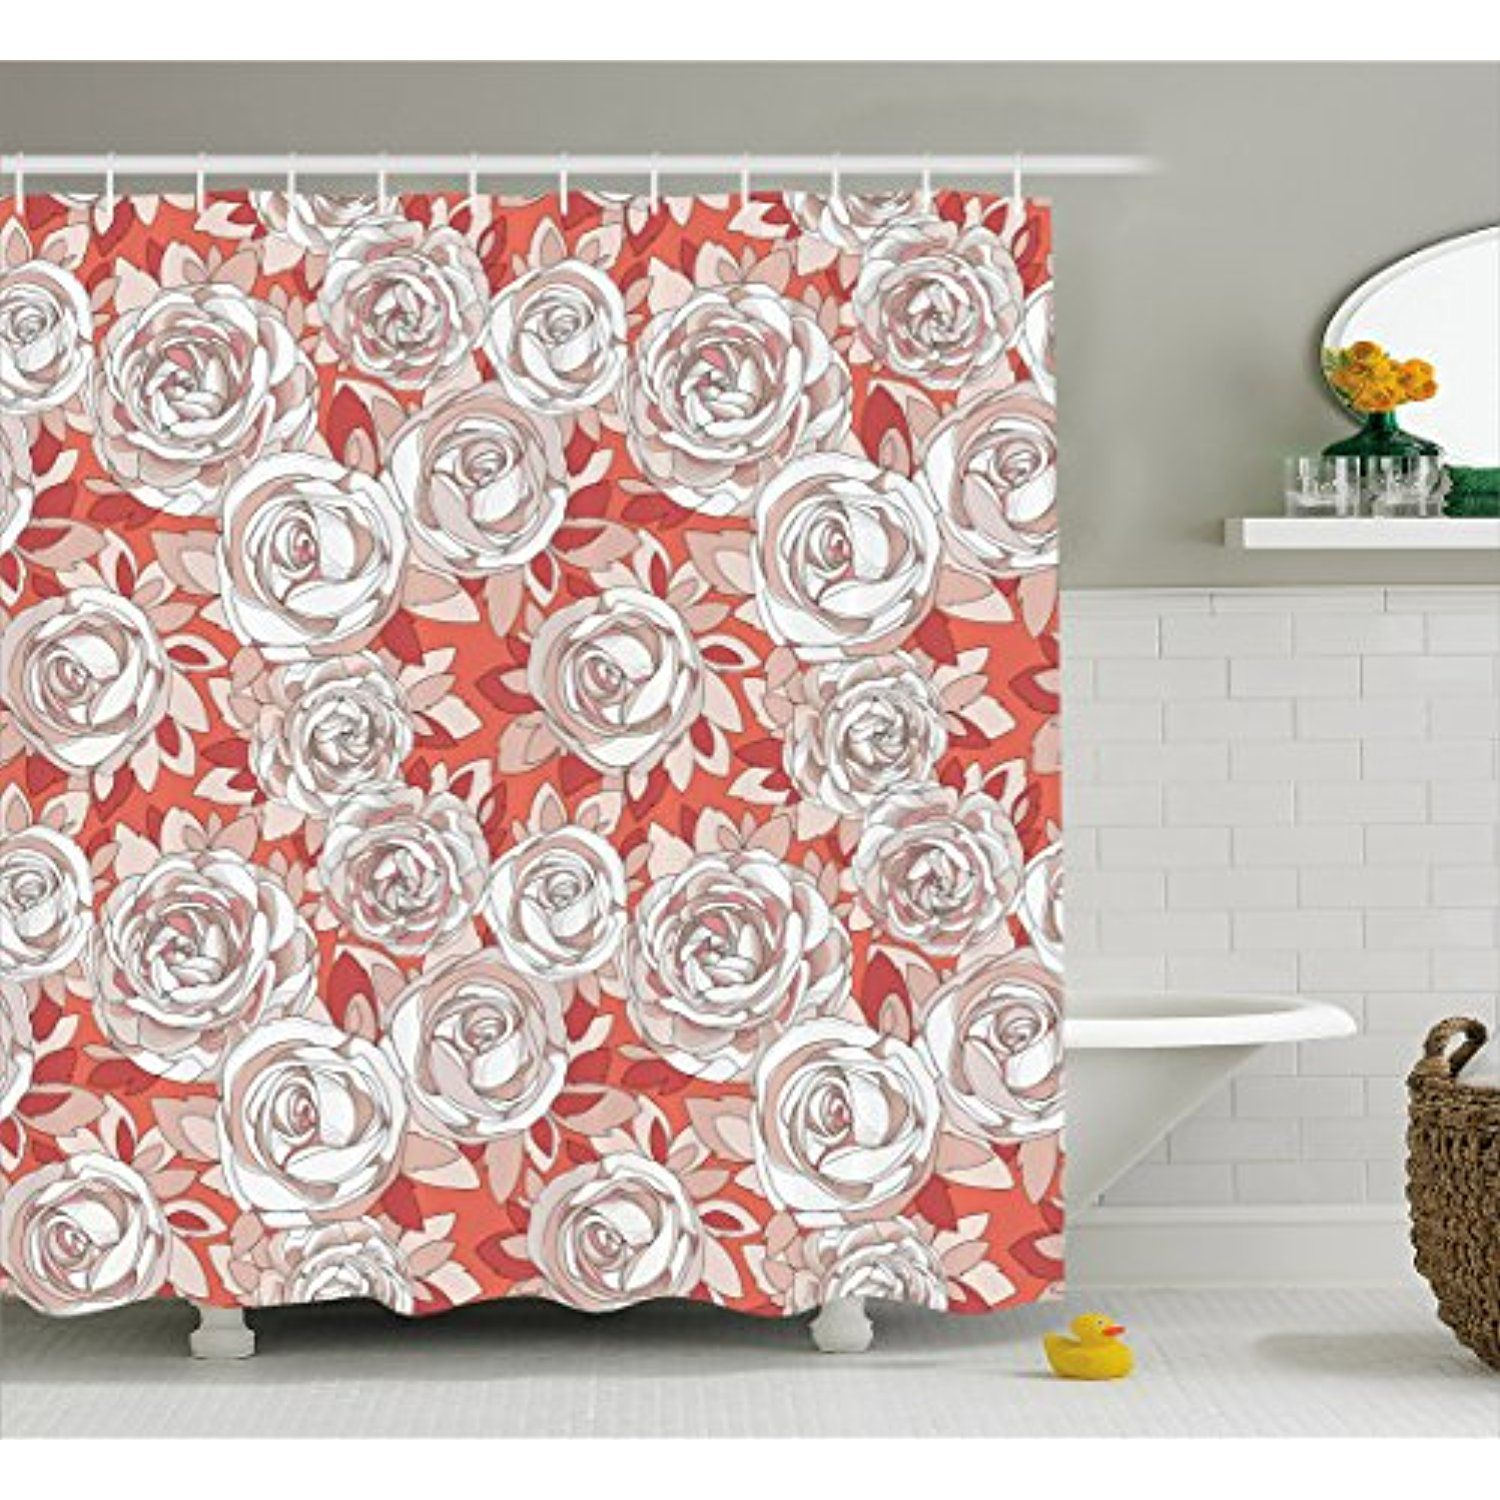 Dusty Rose Shower Curtain by Lunarable, Ornate Delicate Rosebuds ...